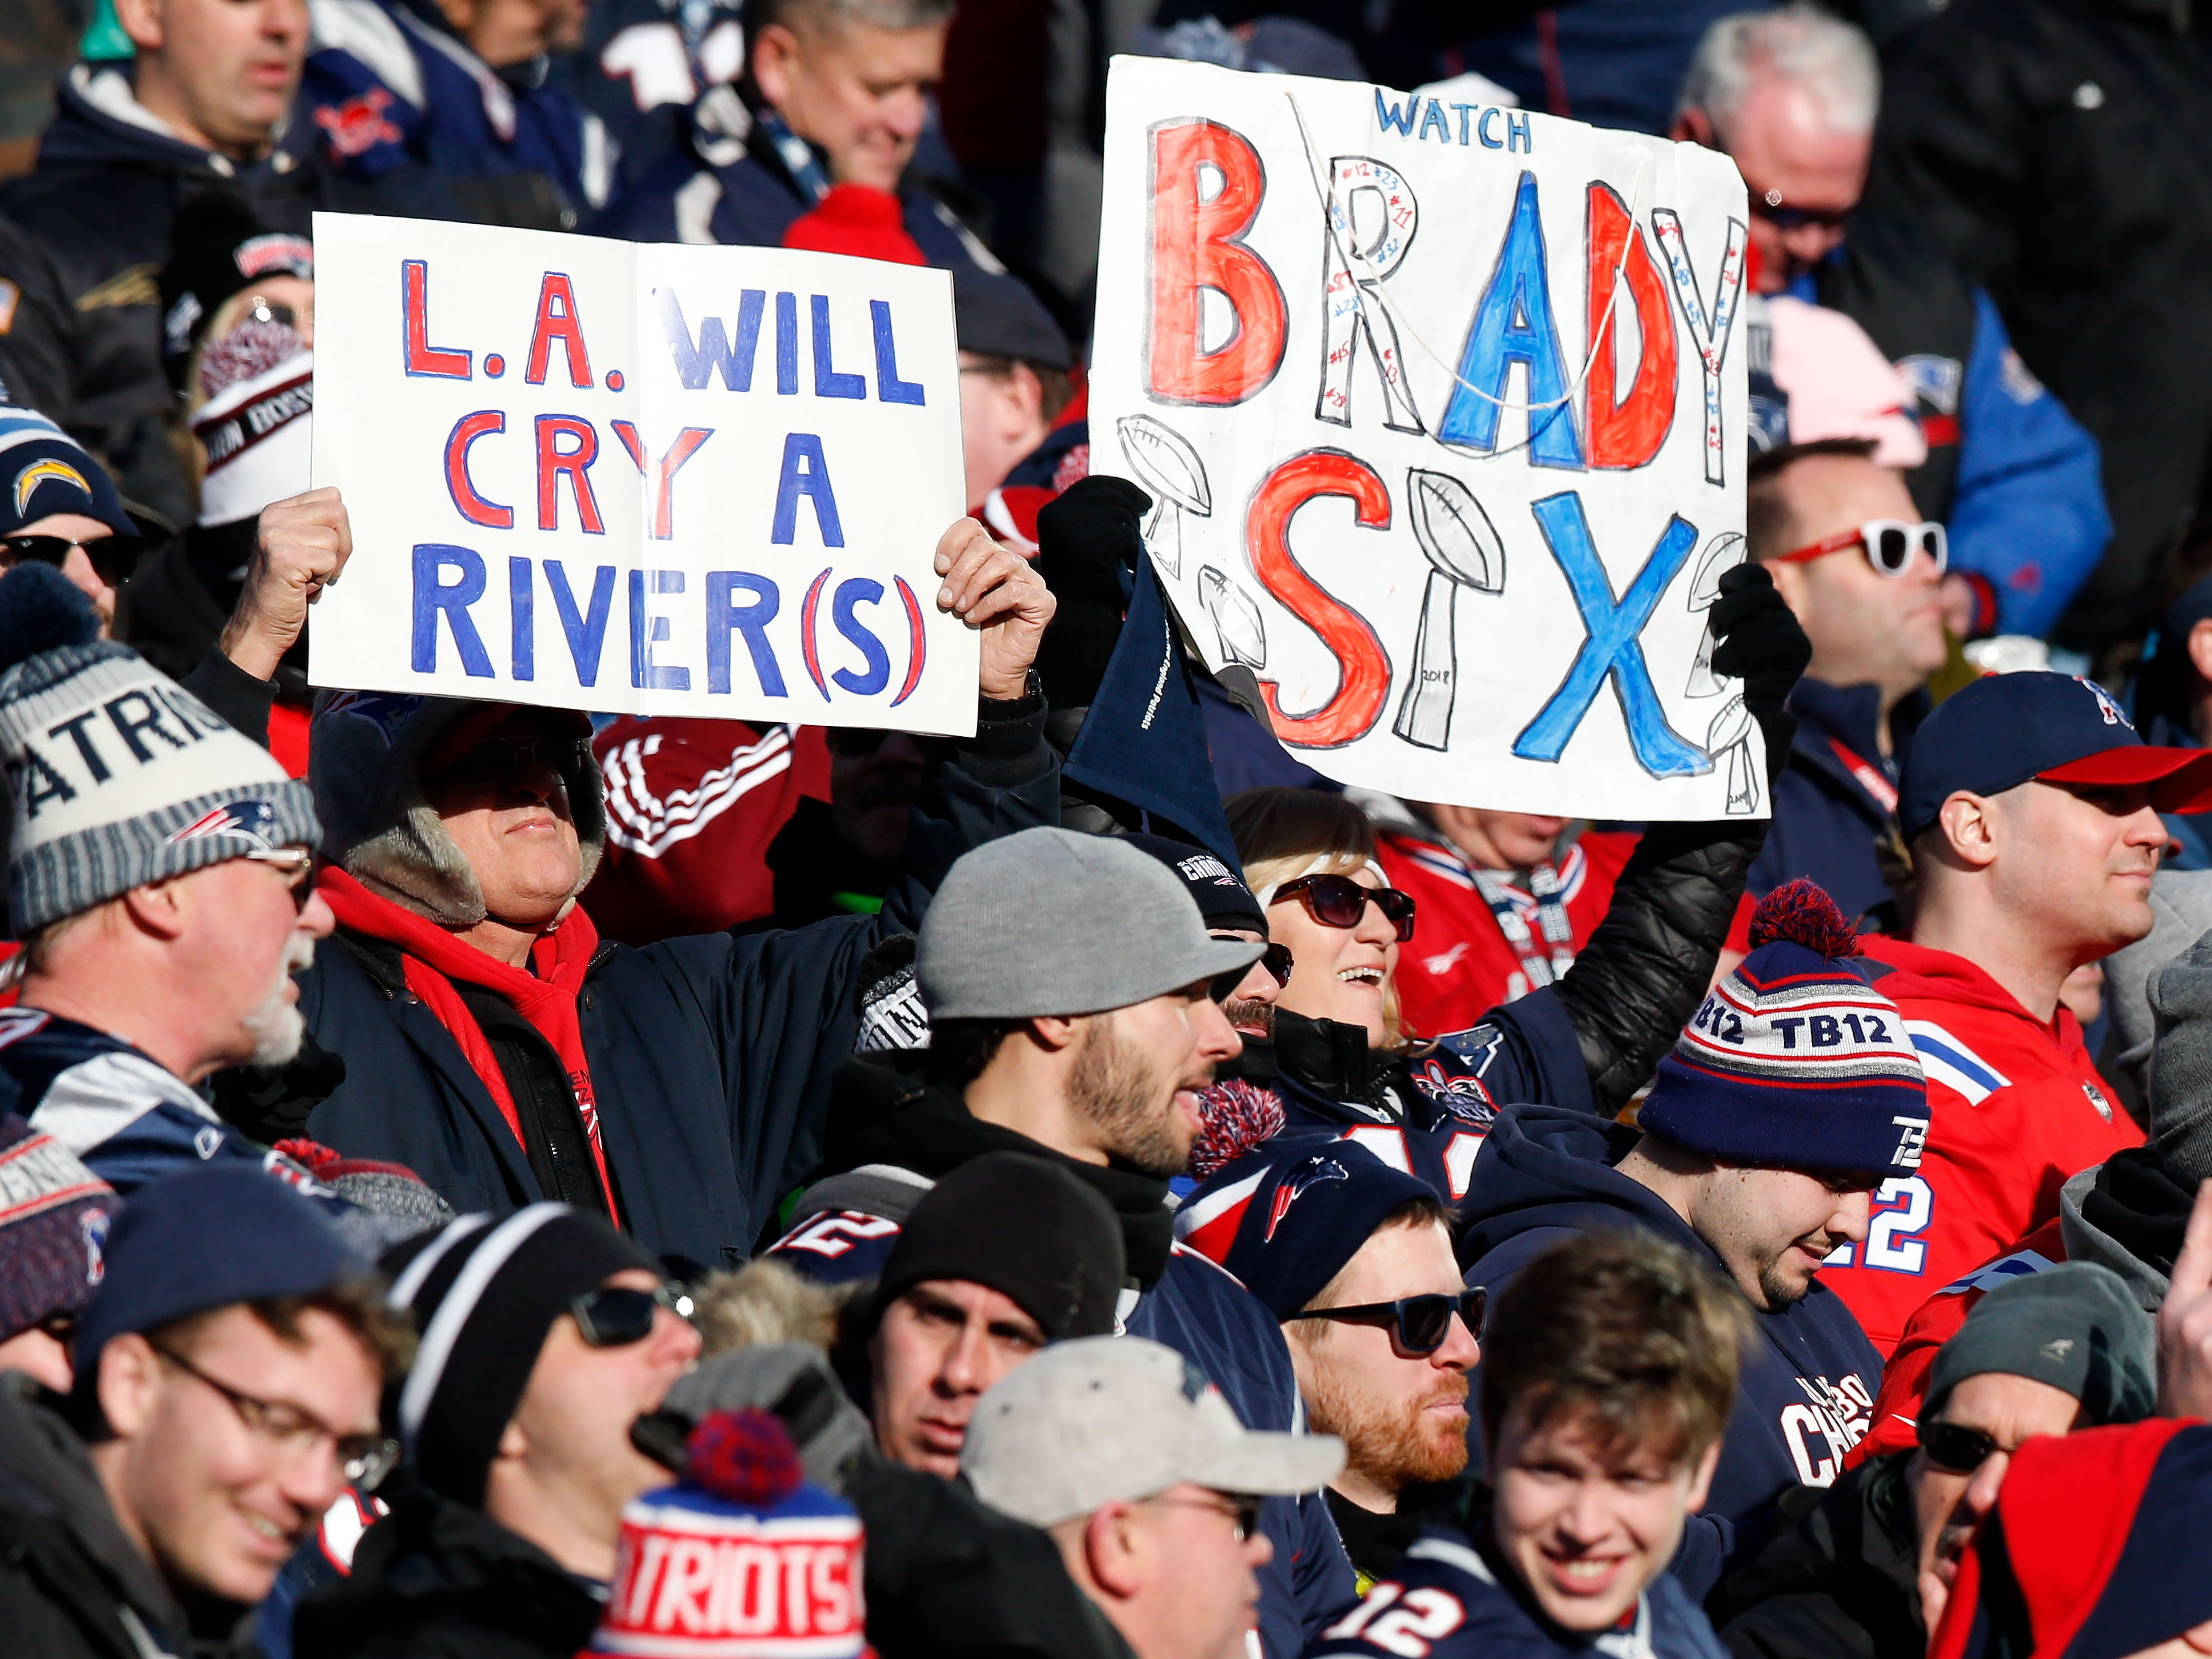 New England Patriots fans hold up signs during the AFC divisional playoff game against the Los Angeles Chargers at Gillette Stadium.